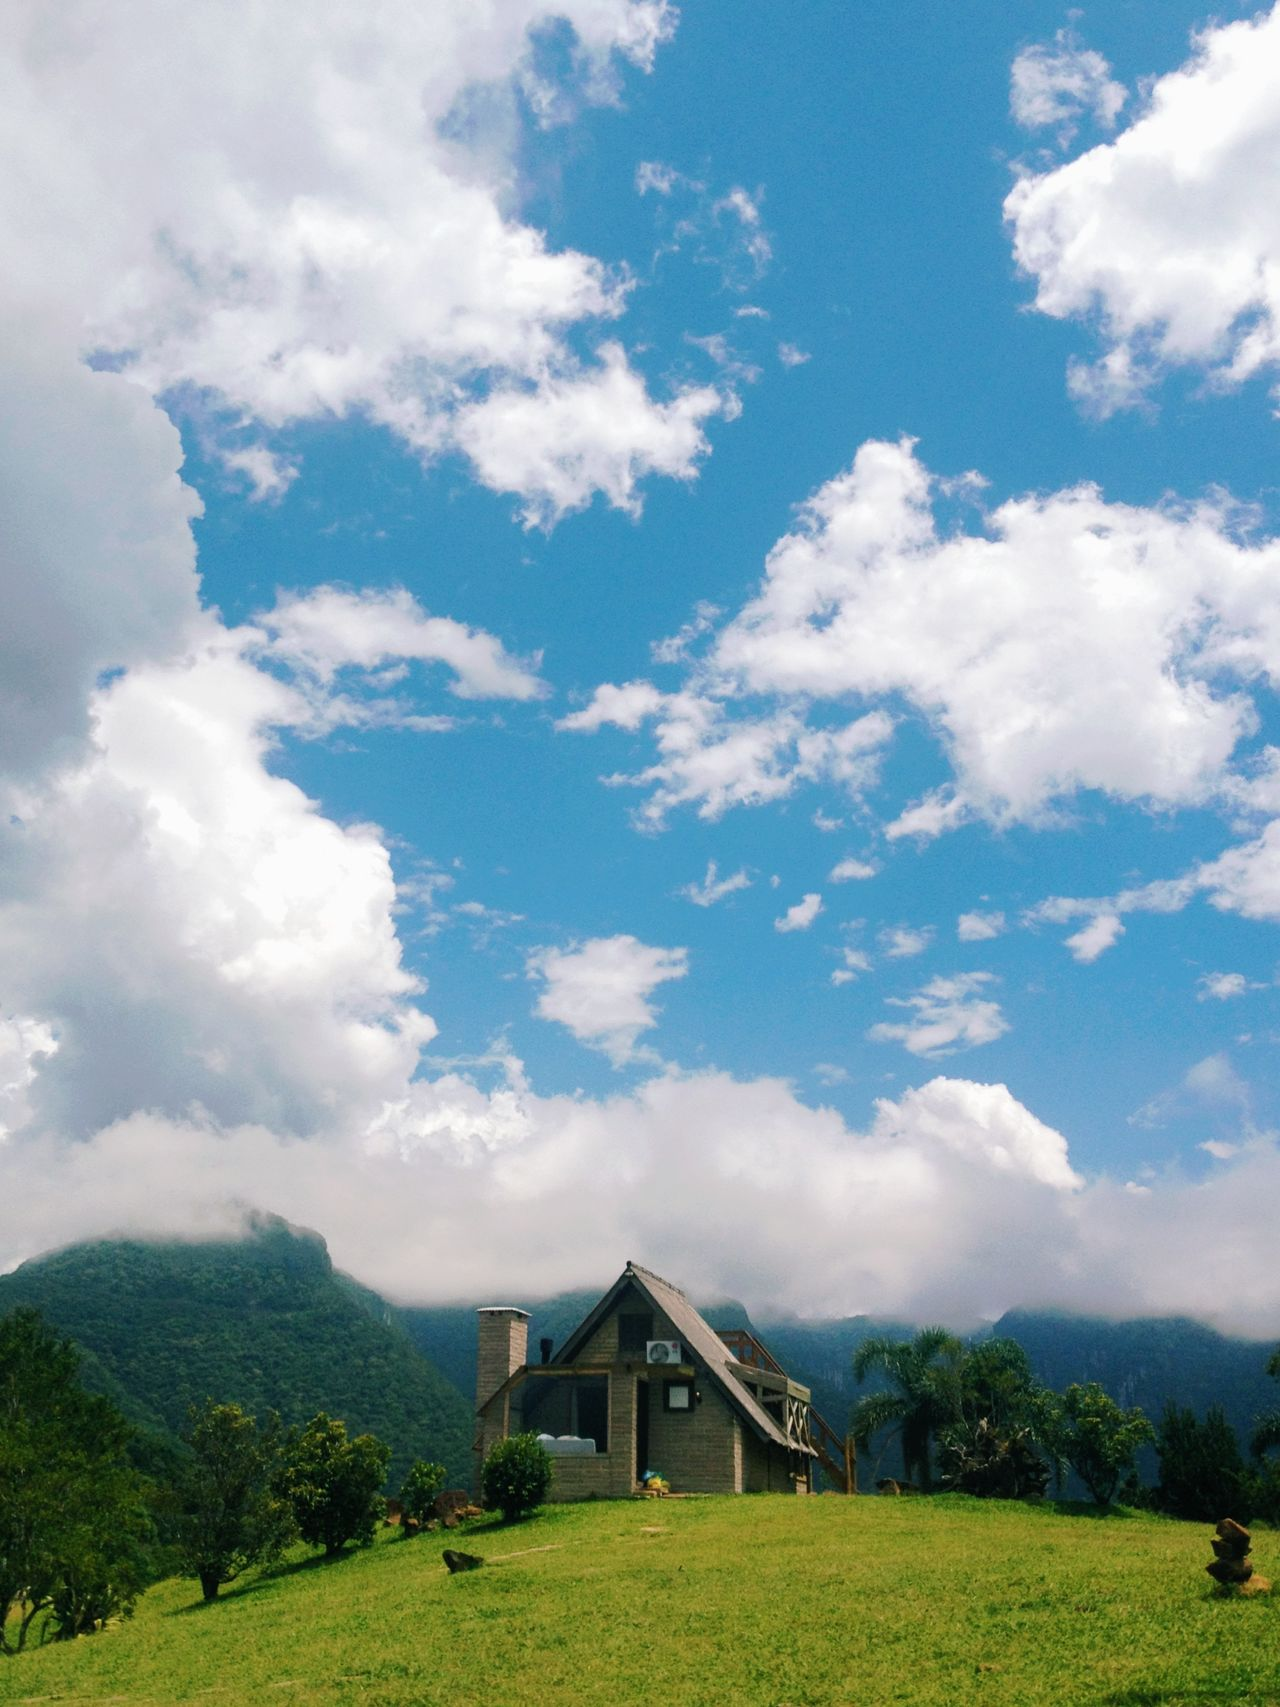 The Cabin in The Mountains Adapted To The City Architecture Beauty In Nature Cabin Cloud - Sky Day Grass Landscape Nature No People Outdoors Paradise Scenics Sky